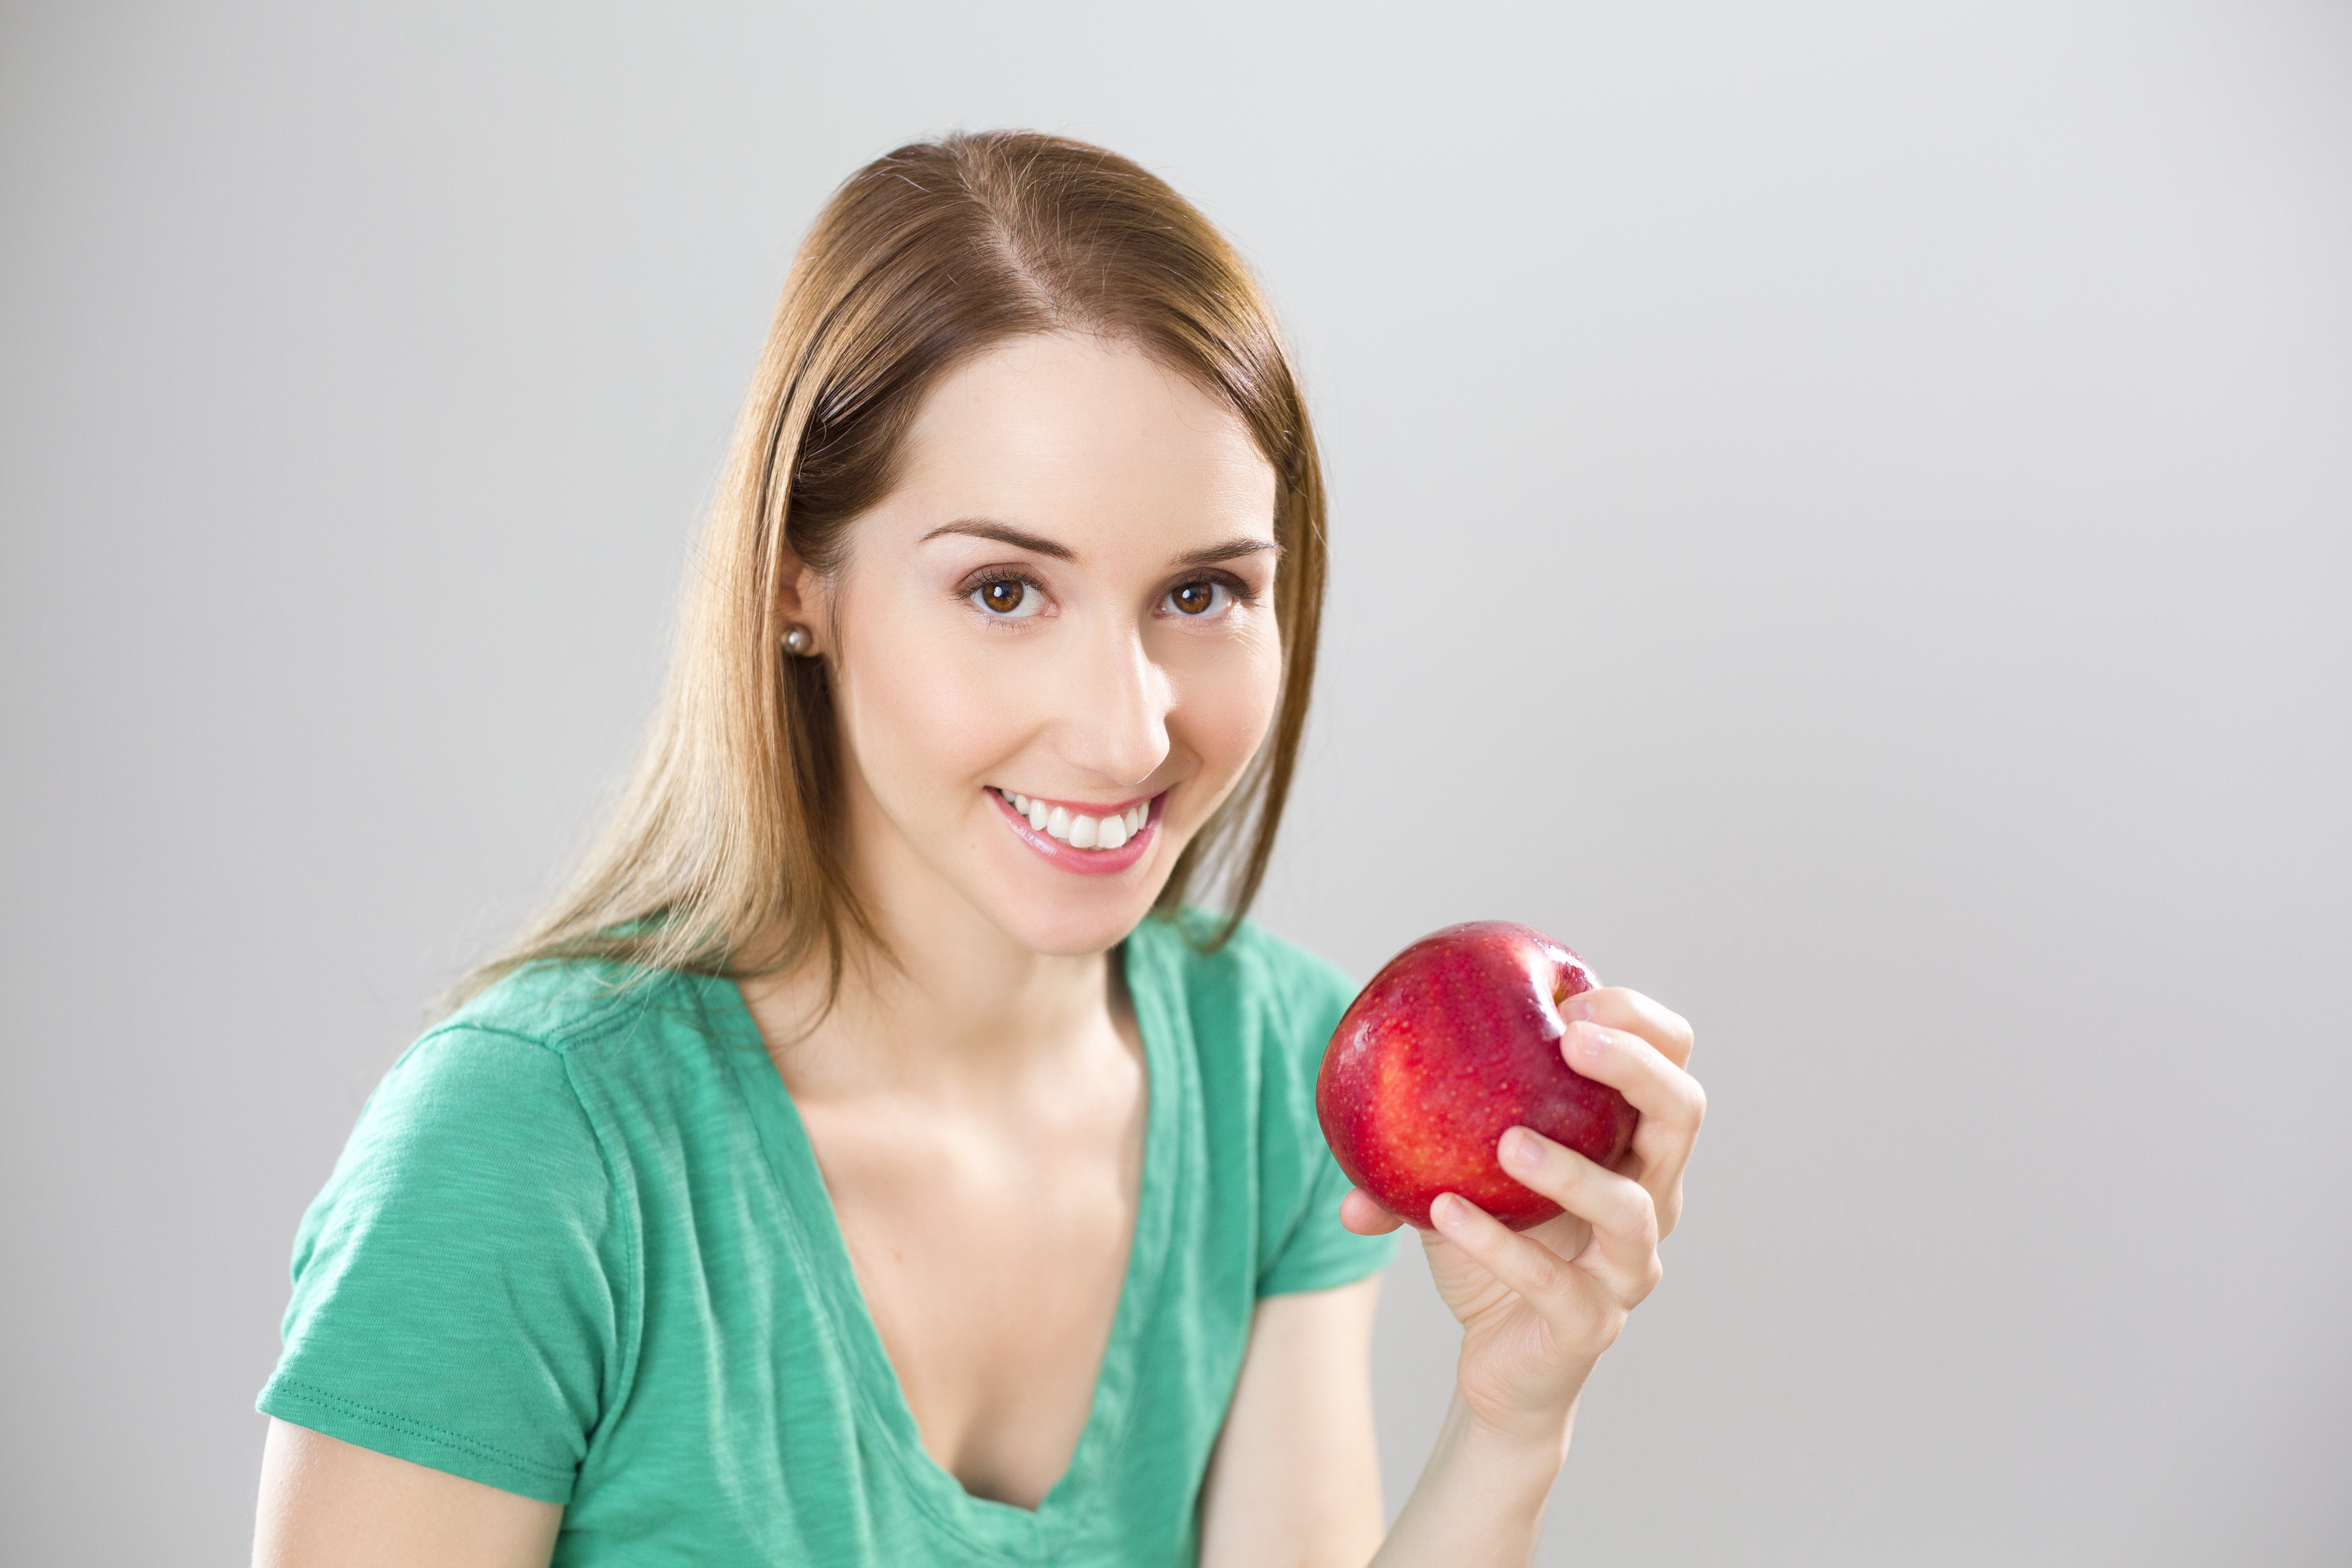 Portrait of Young Woman Eating Fruit Against White Background